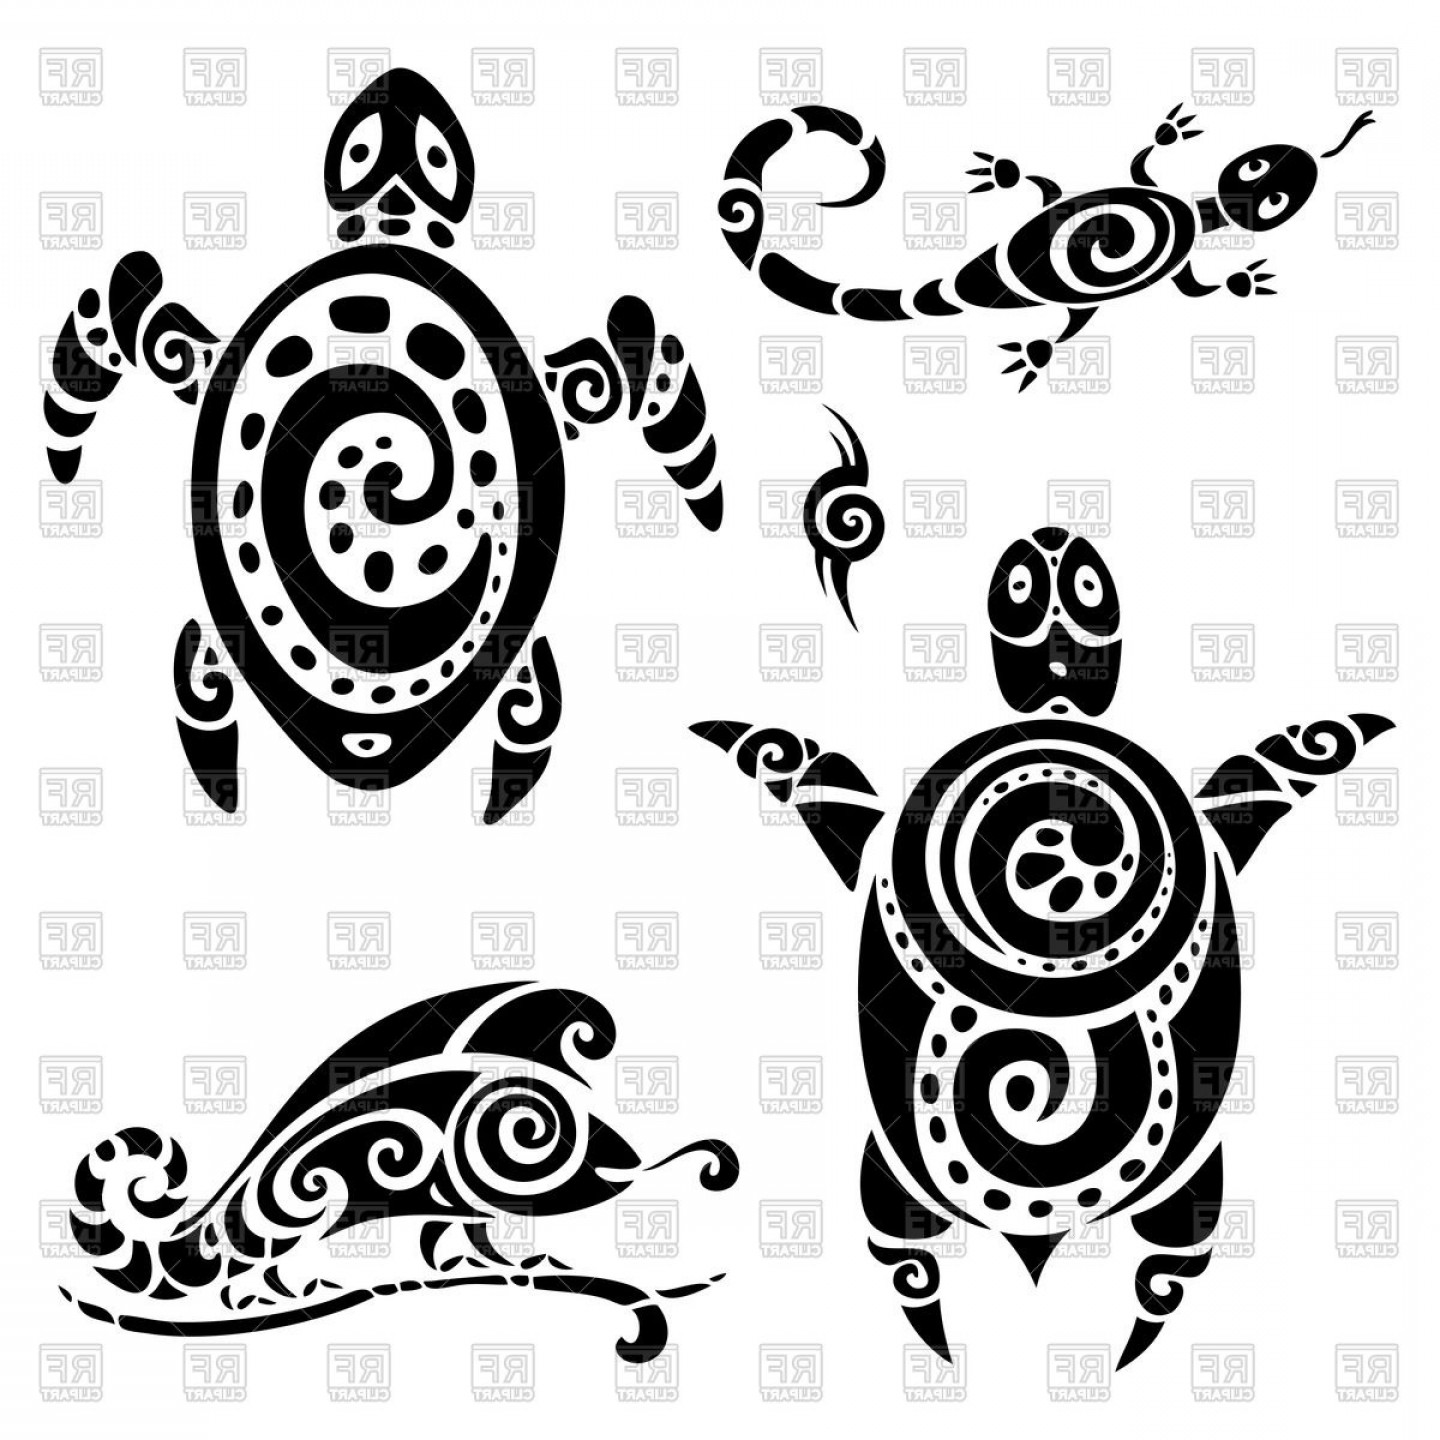 Polynesian clipart image black and white library Tribal Polynesian Tattoo Lizard And Turtle Vector Clipart ... image black and white library